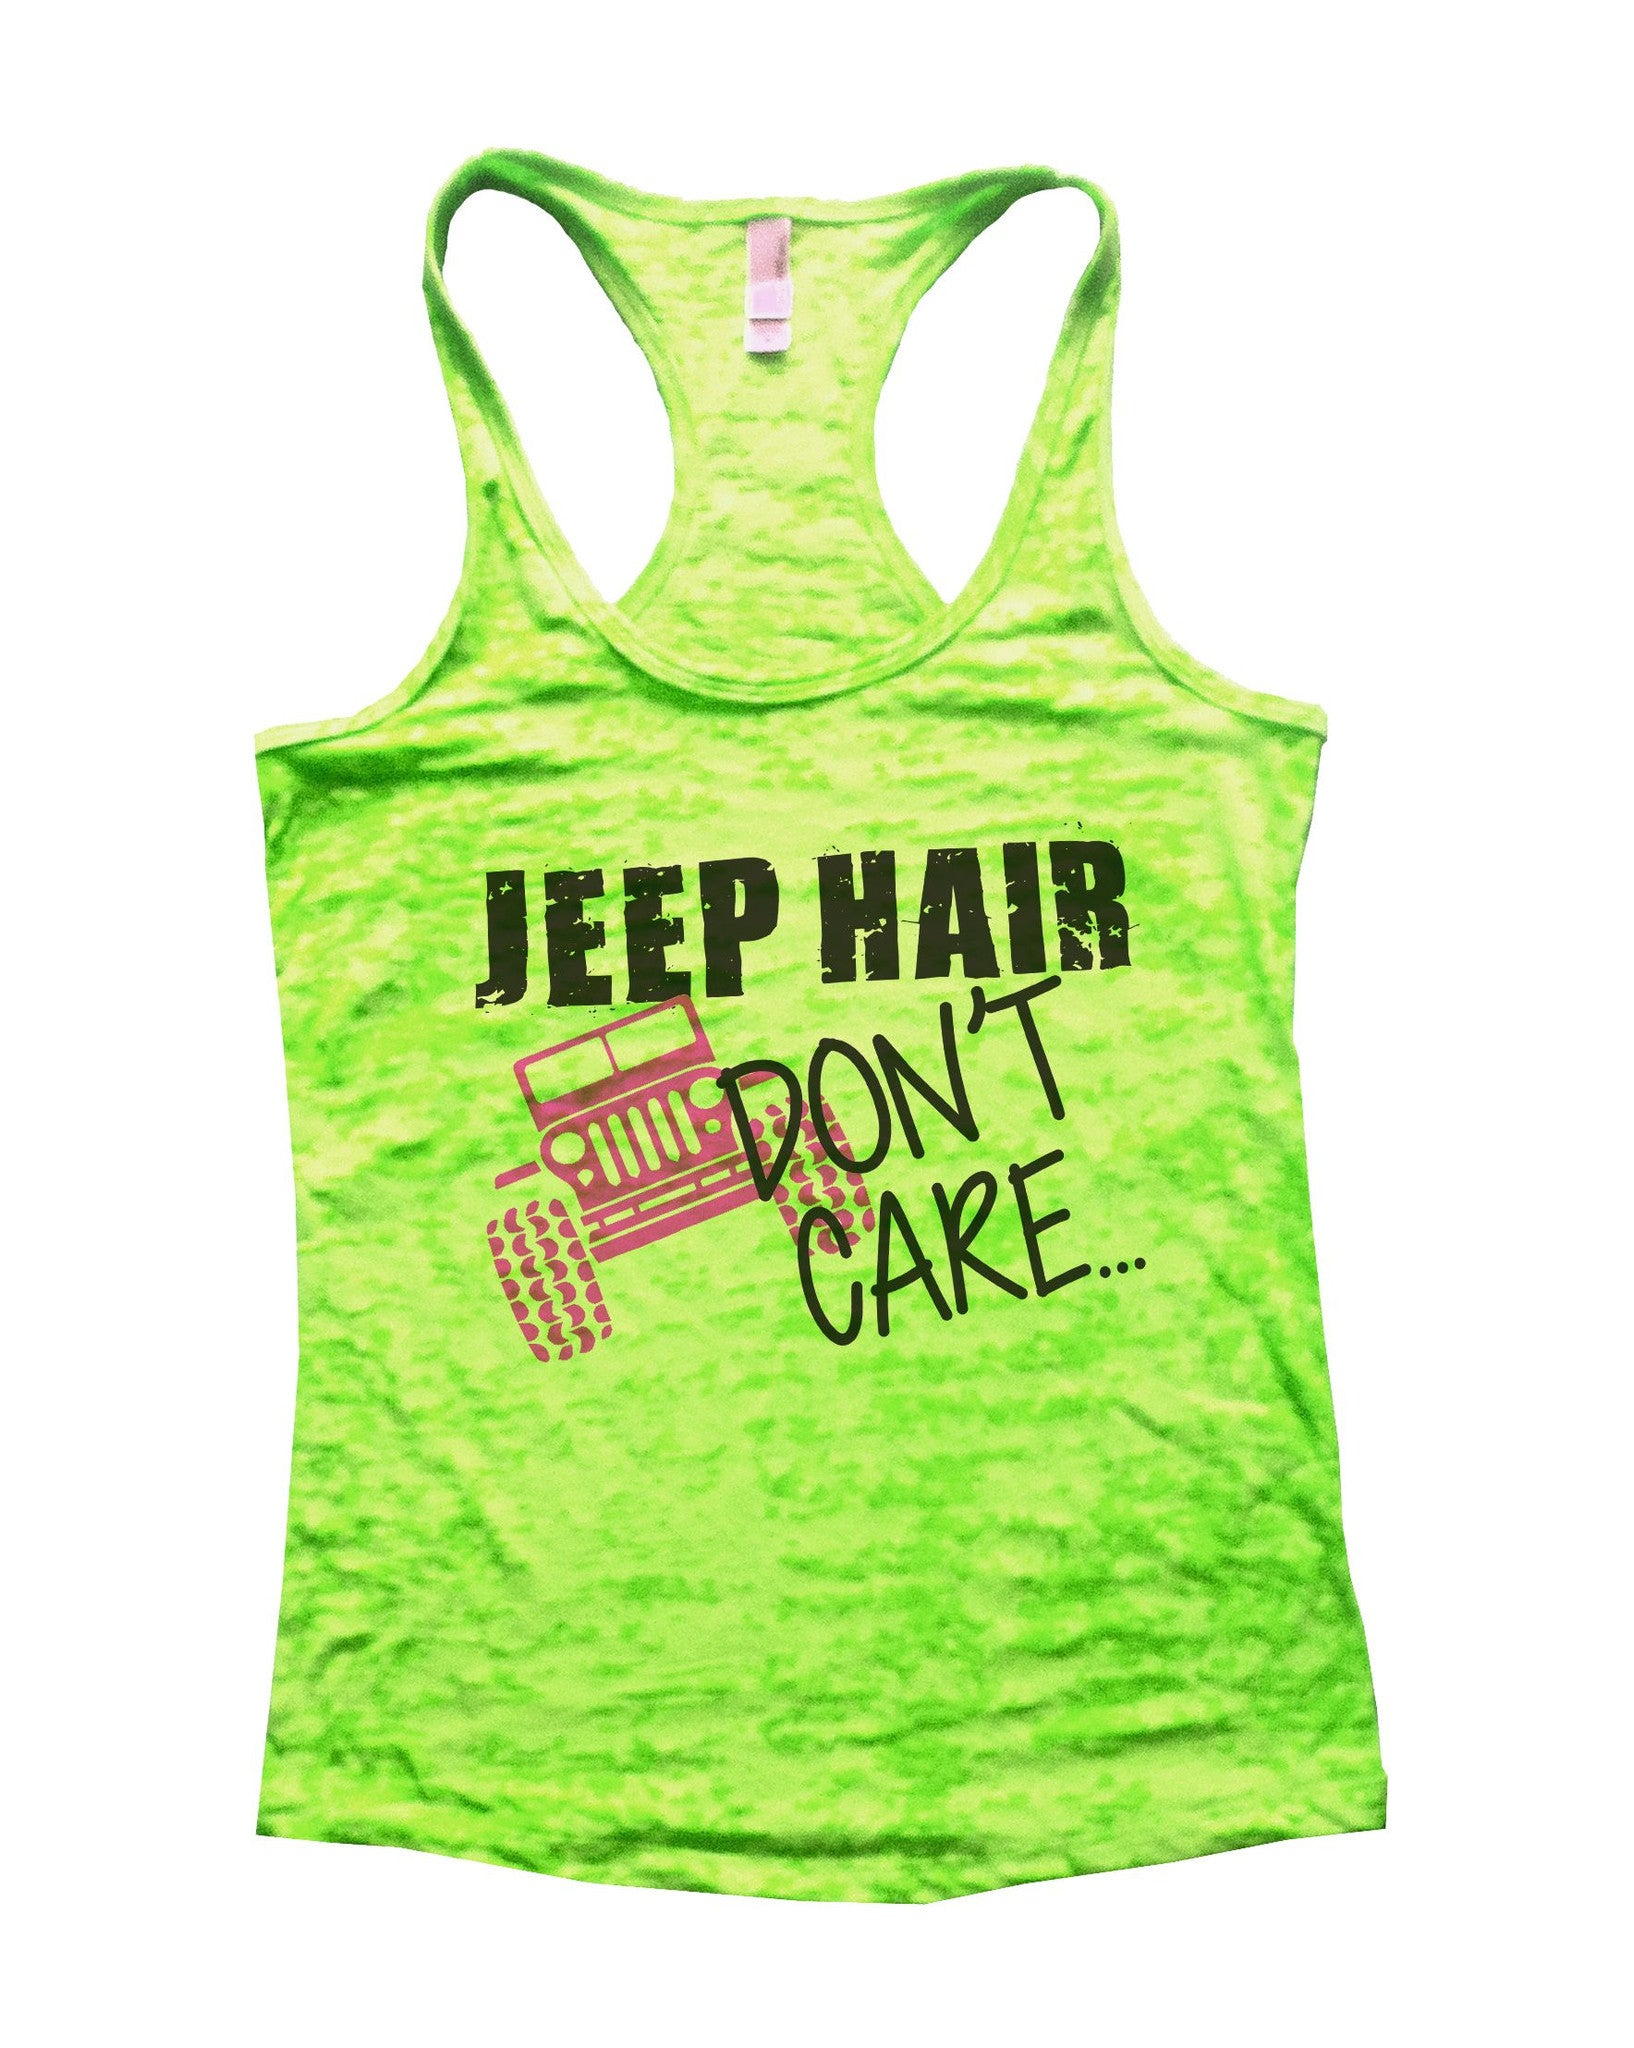 Jeep Hair Dont Care Burnout Tank Top By BurnoutTankTops.com - 729 - Funny Shirts Tank Tops Burnouts and Triblends  - 3